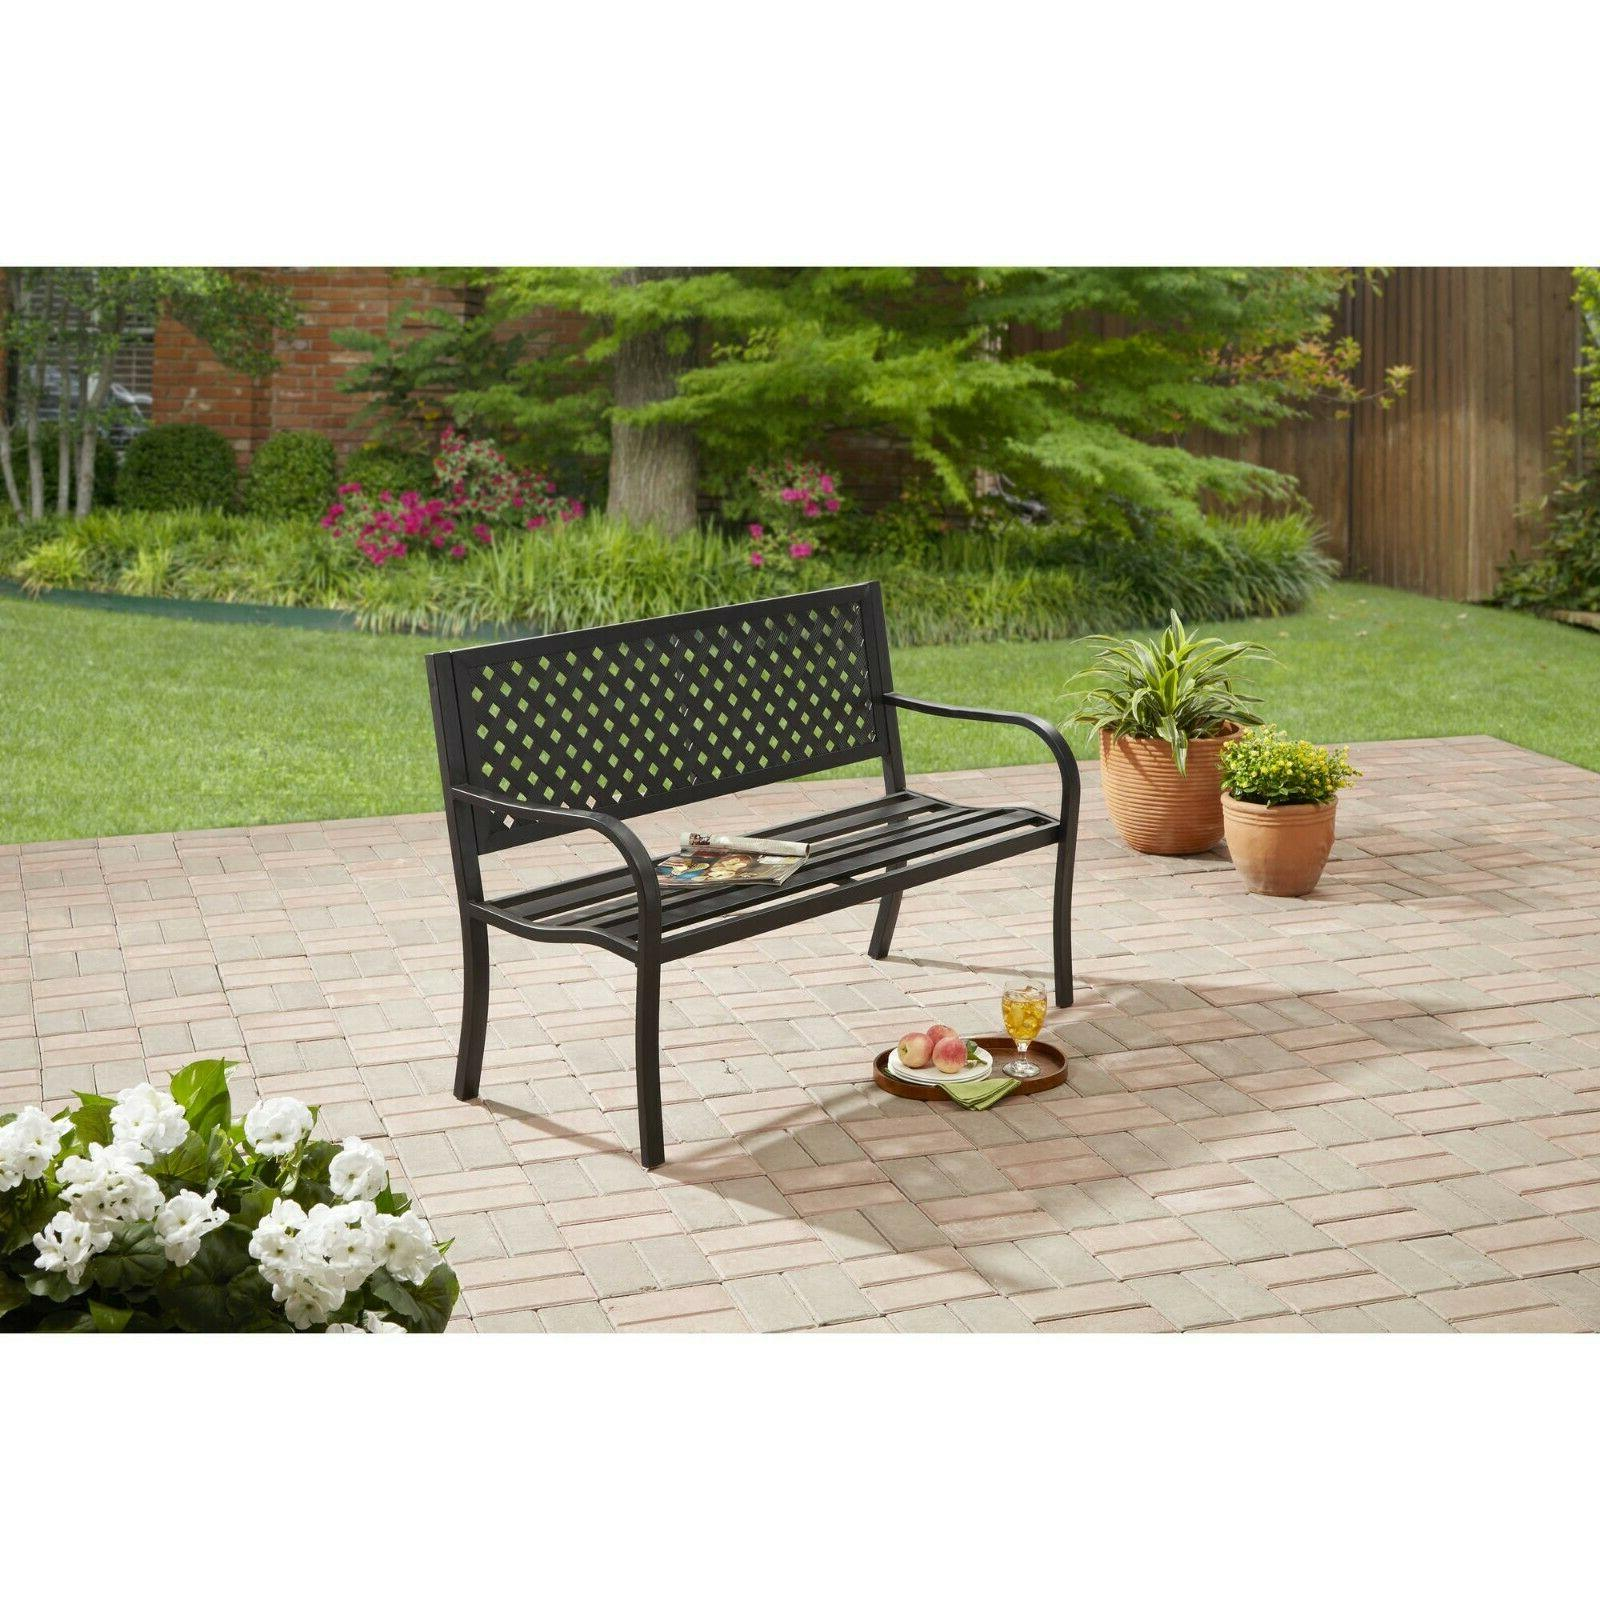 Garden Furniture Seat Park Chair